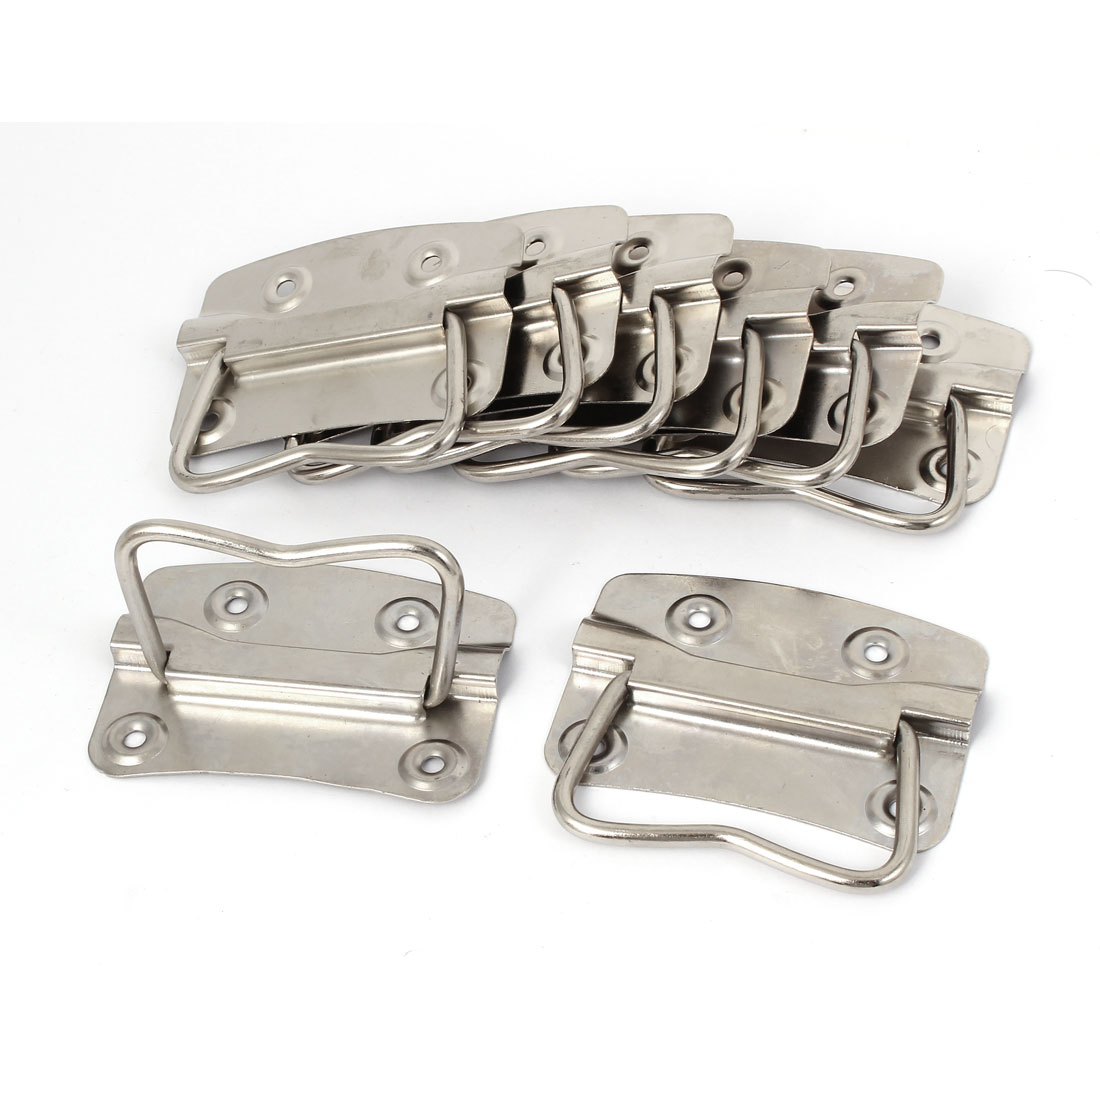 "Metal Flush Mounted Type Box Pulls Tool Chest Trunk Handles 3.5"" Length 8pcs"